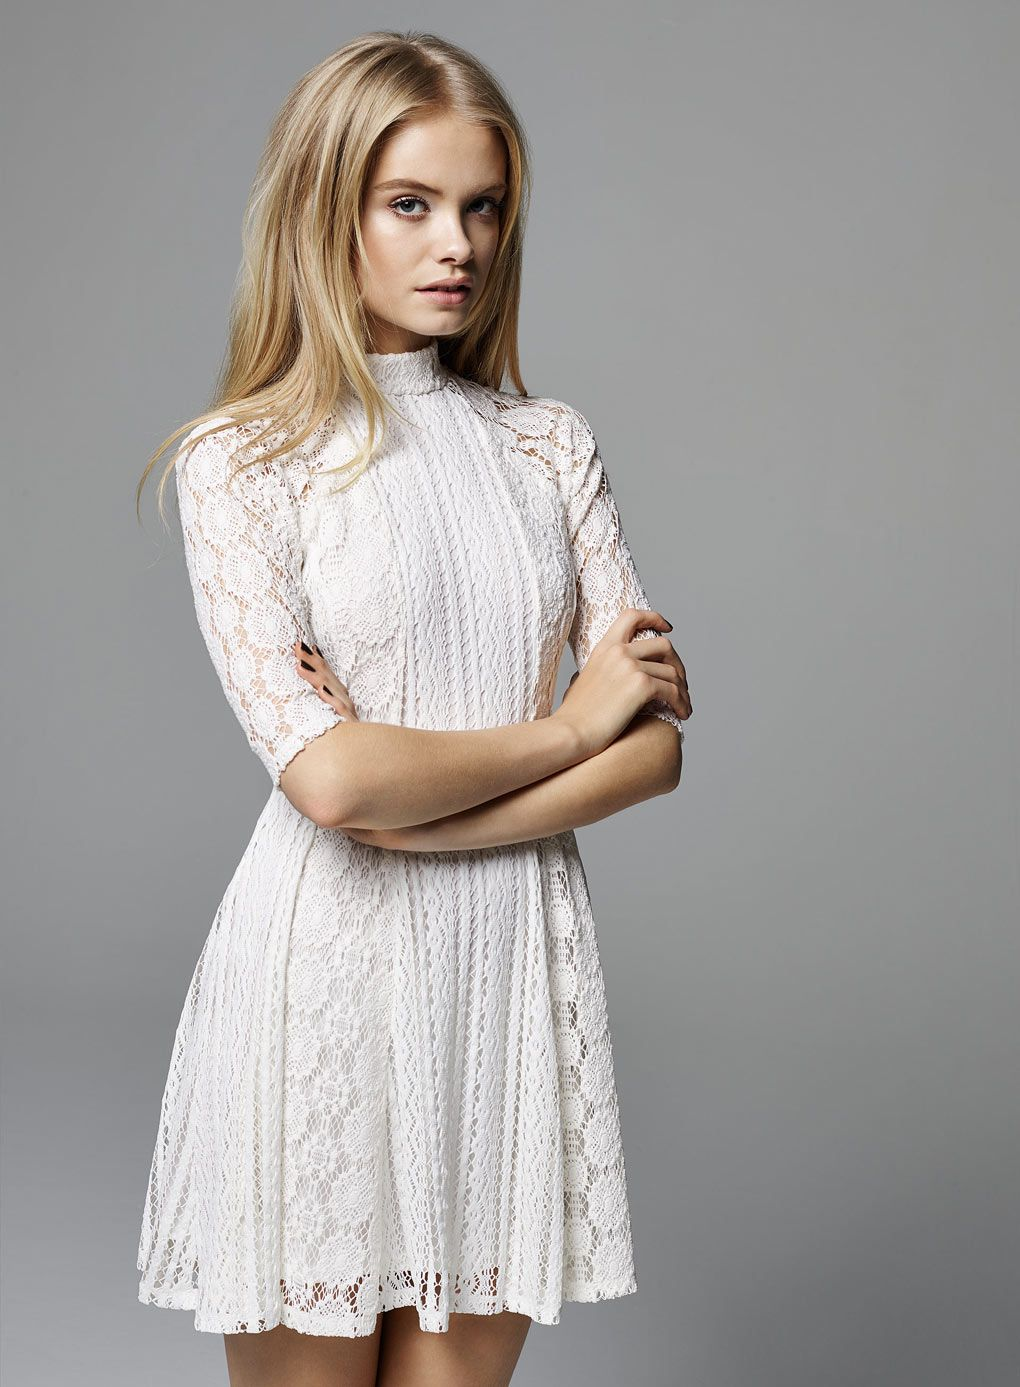 Miss Selfridge White Lace High Neck Dress Price: £45.00 | BUY ME ...